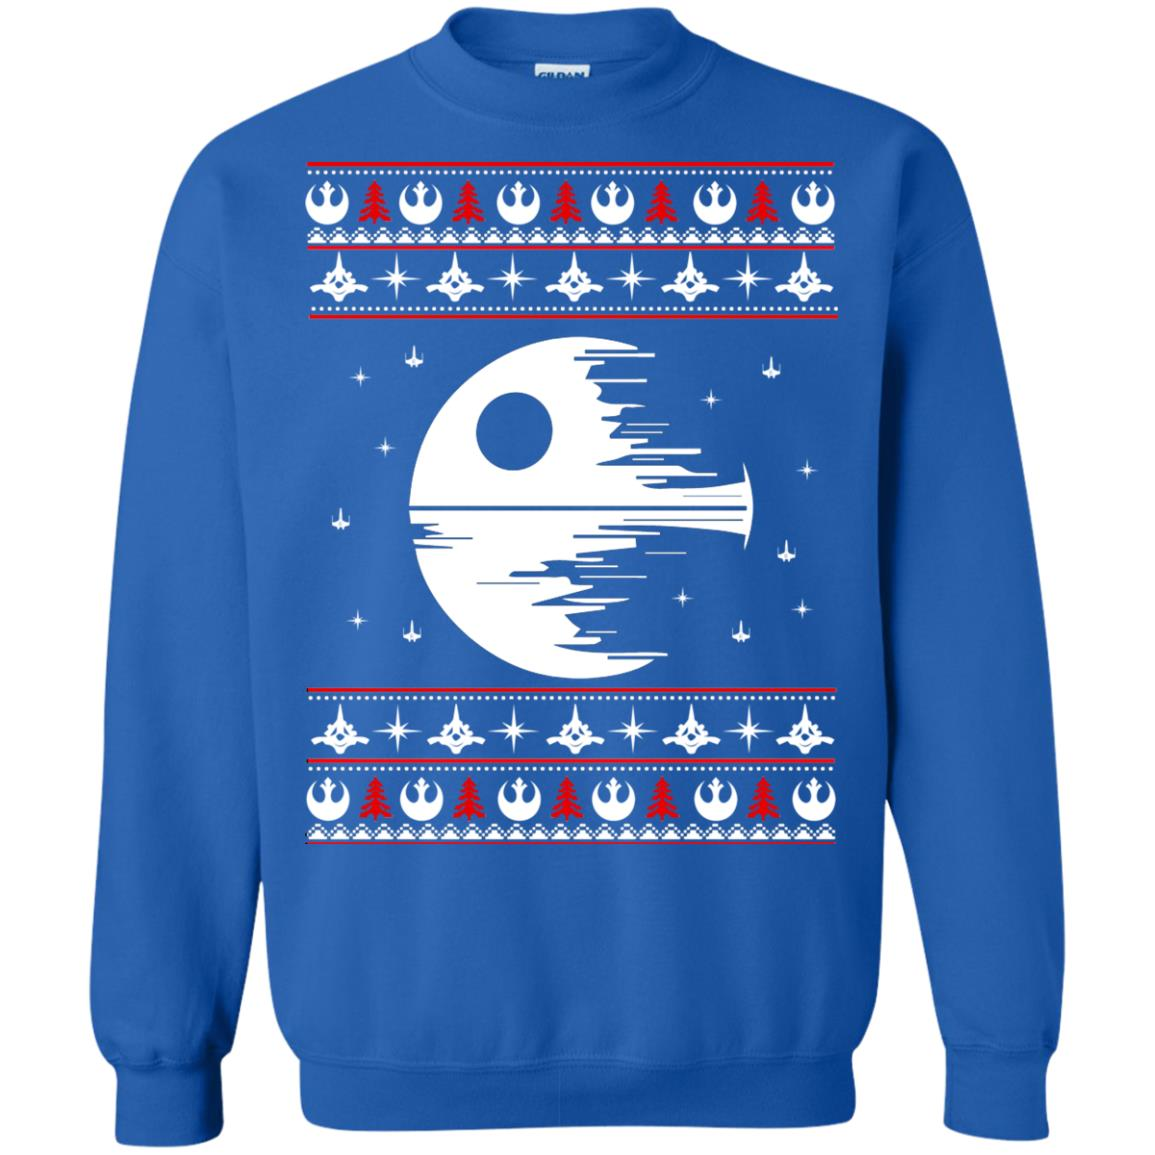 image 1780 - Star Wars Death Star Darth Vader Ugly Sweater, Shirt